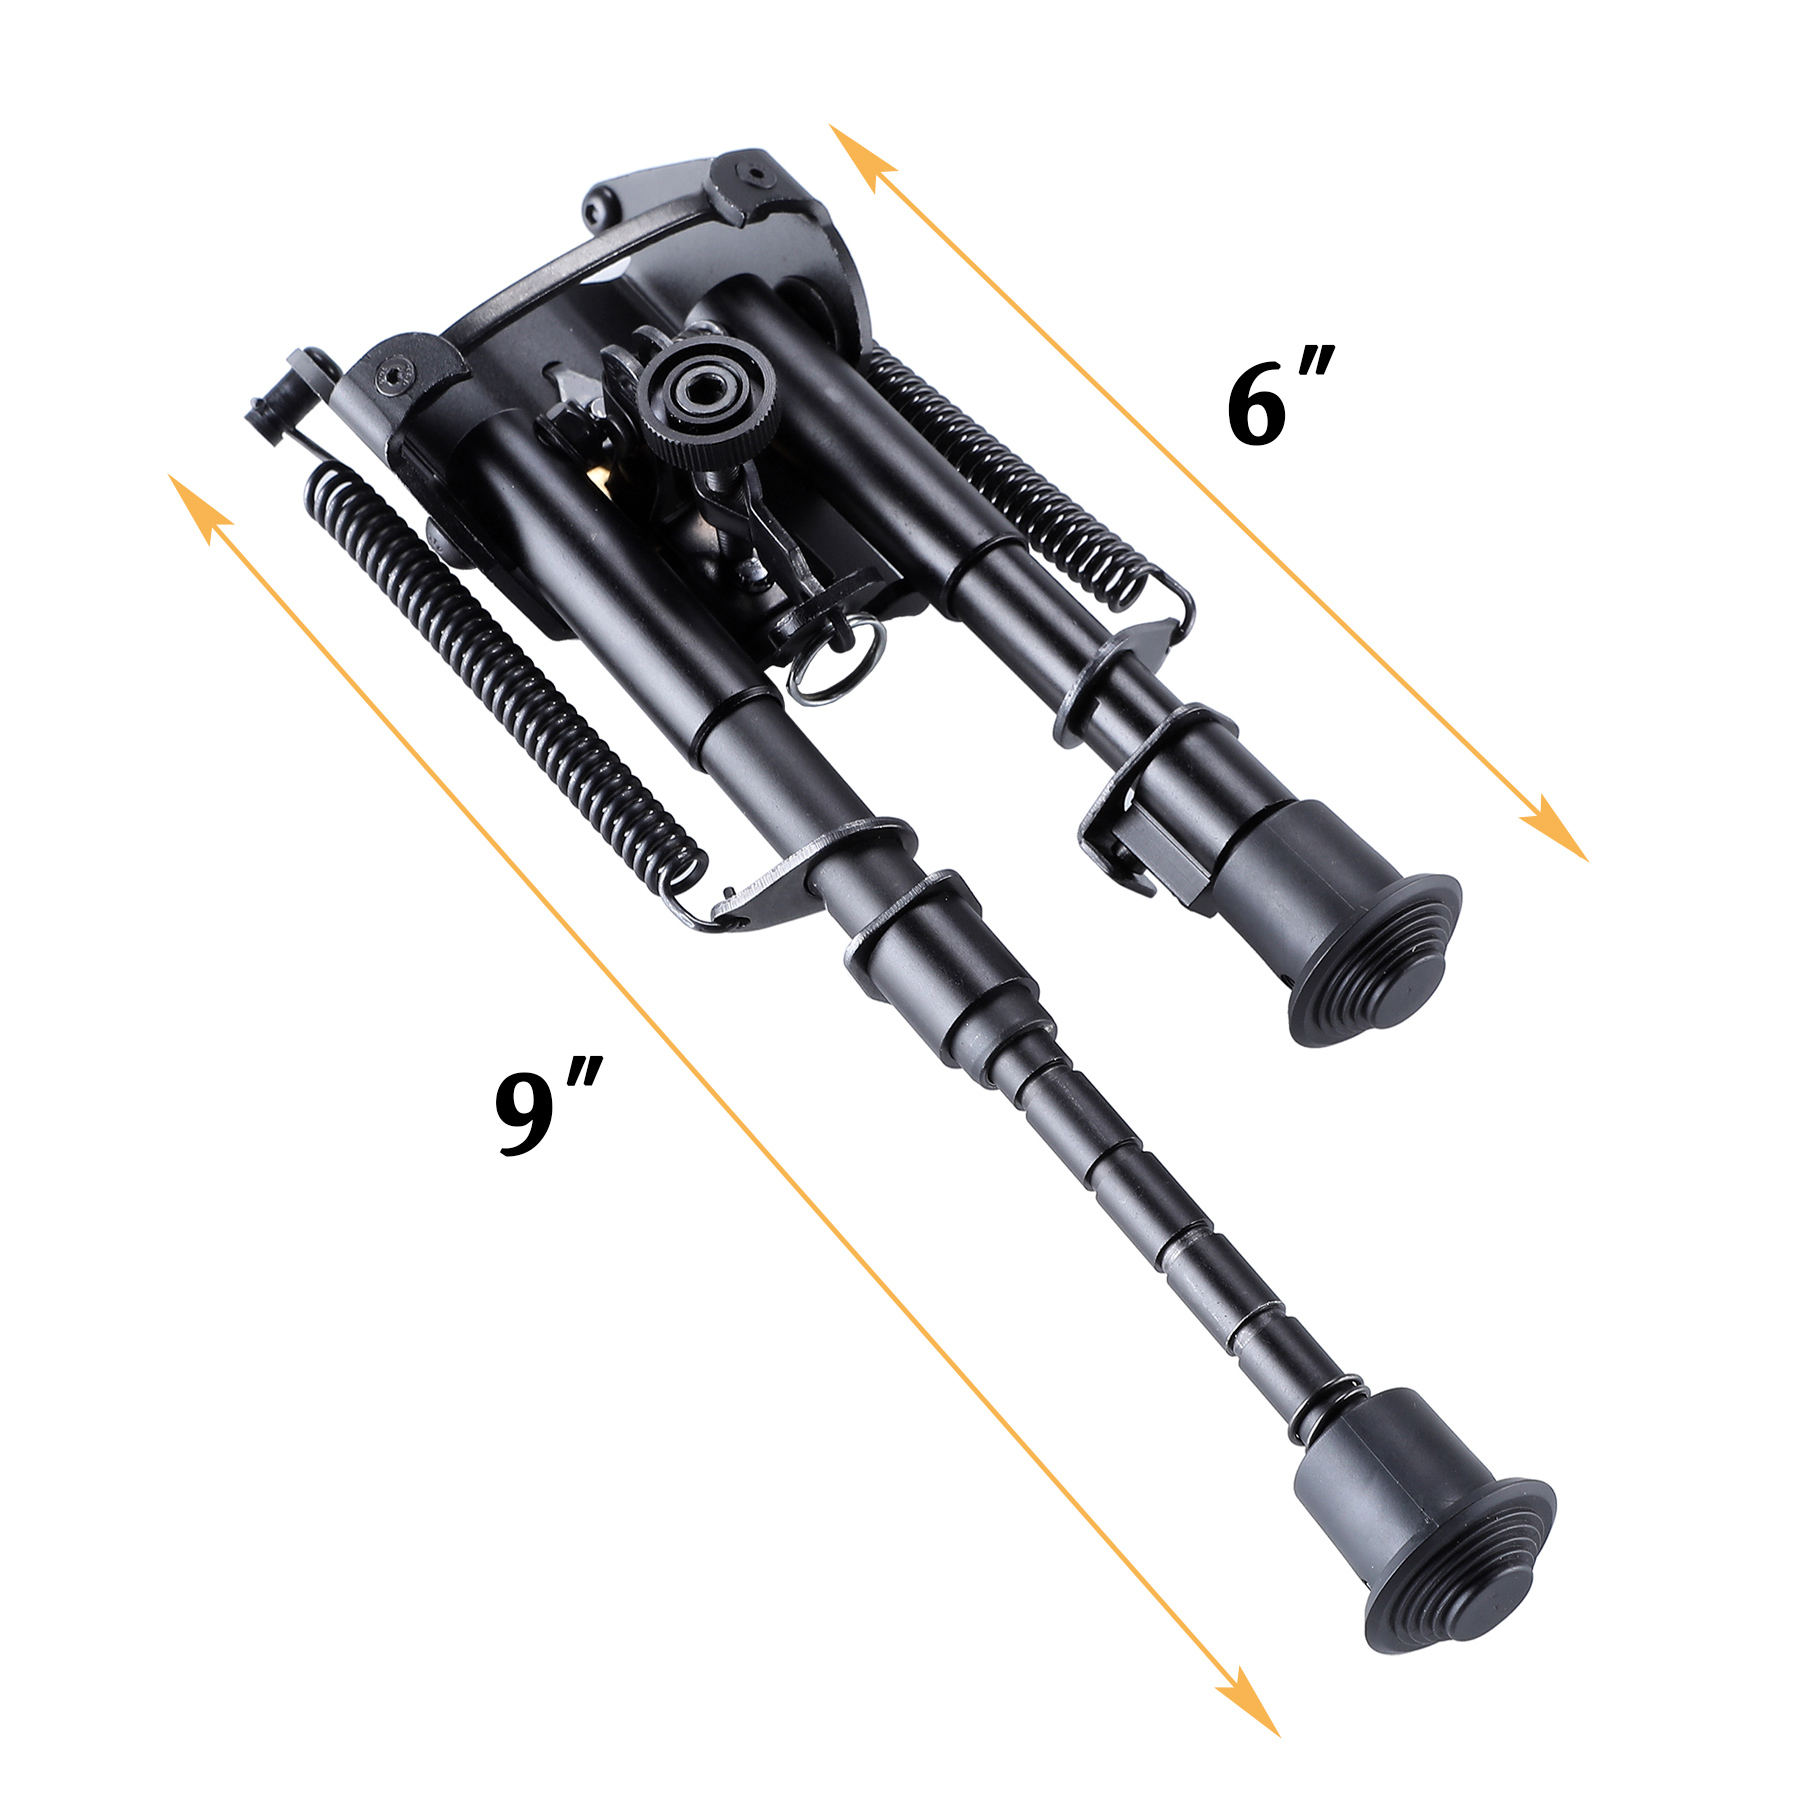 Adjustable Universal Rifle Bipod w/ Swivel Stud Mount & Rail Mount Adapter 6-9""